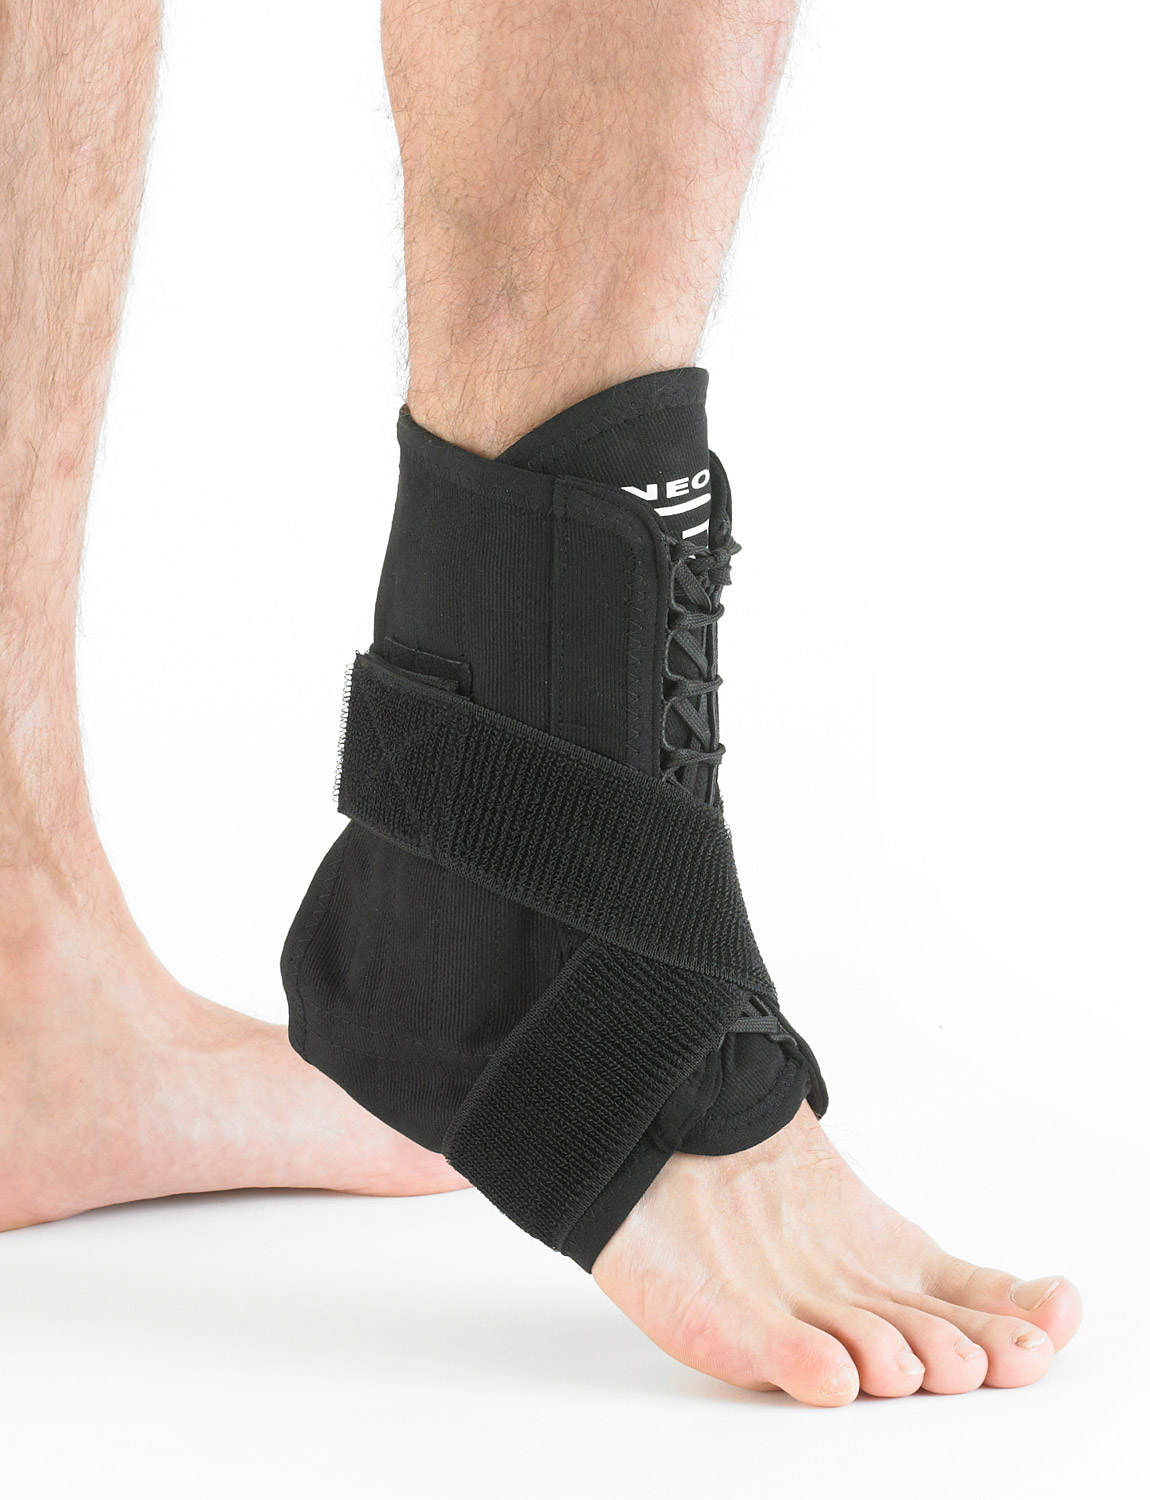 854 - LACED ANKLE SUPPORT  Made from non-stretch cotton that shapes to the ankle and foot, it also features flexible stays to help stabilize and reinforce the mobile ankle.